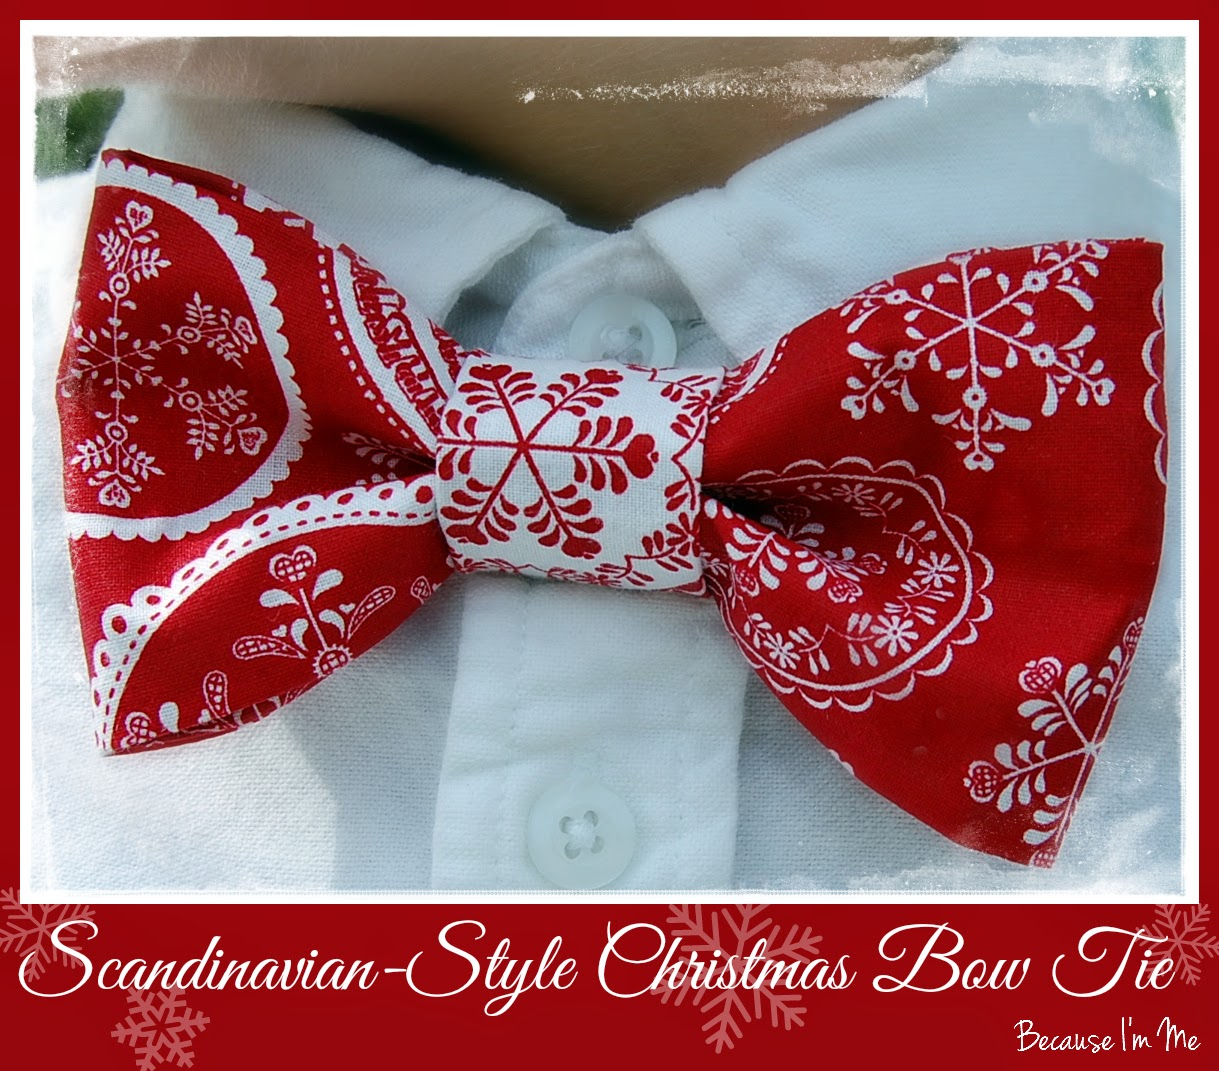 Because I'm Me Scandinavian Style Christmas cotton bow tie for men and boys